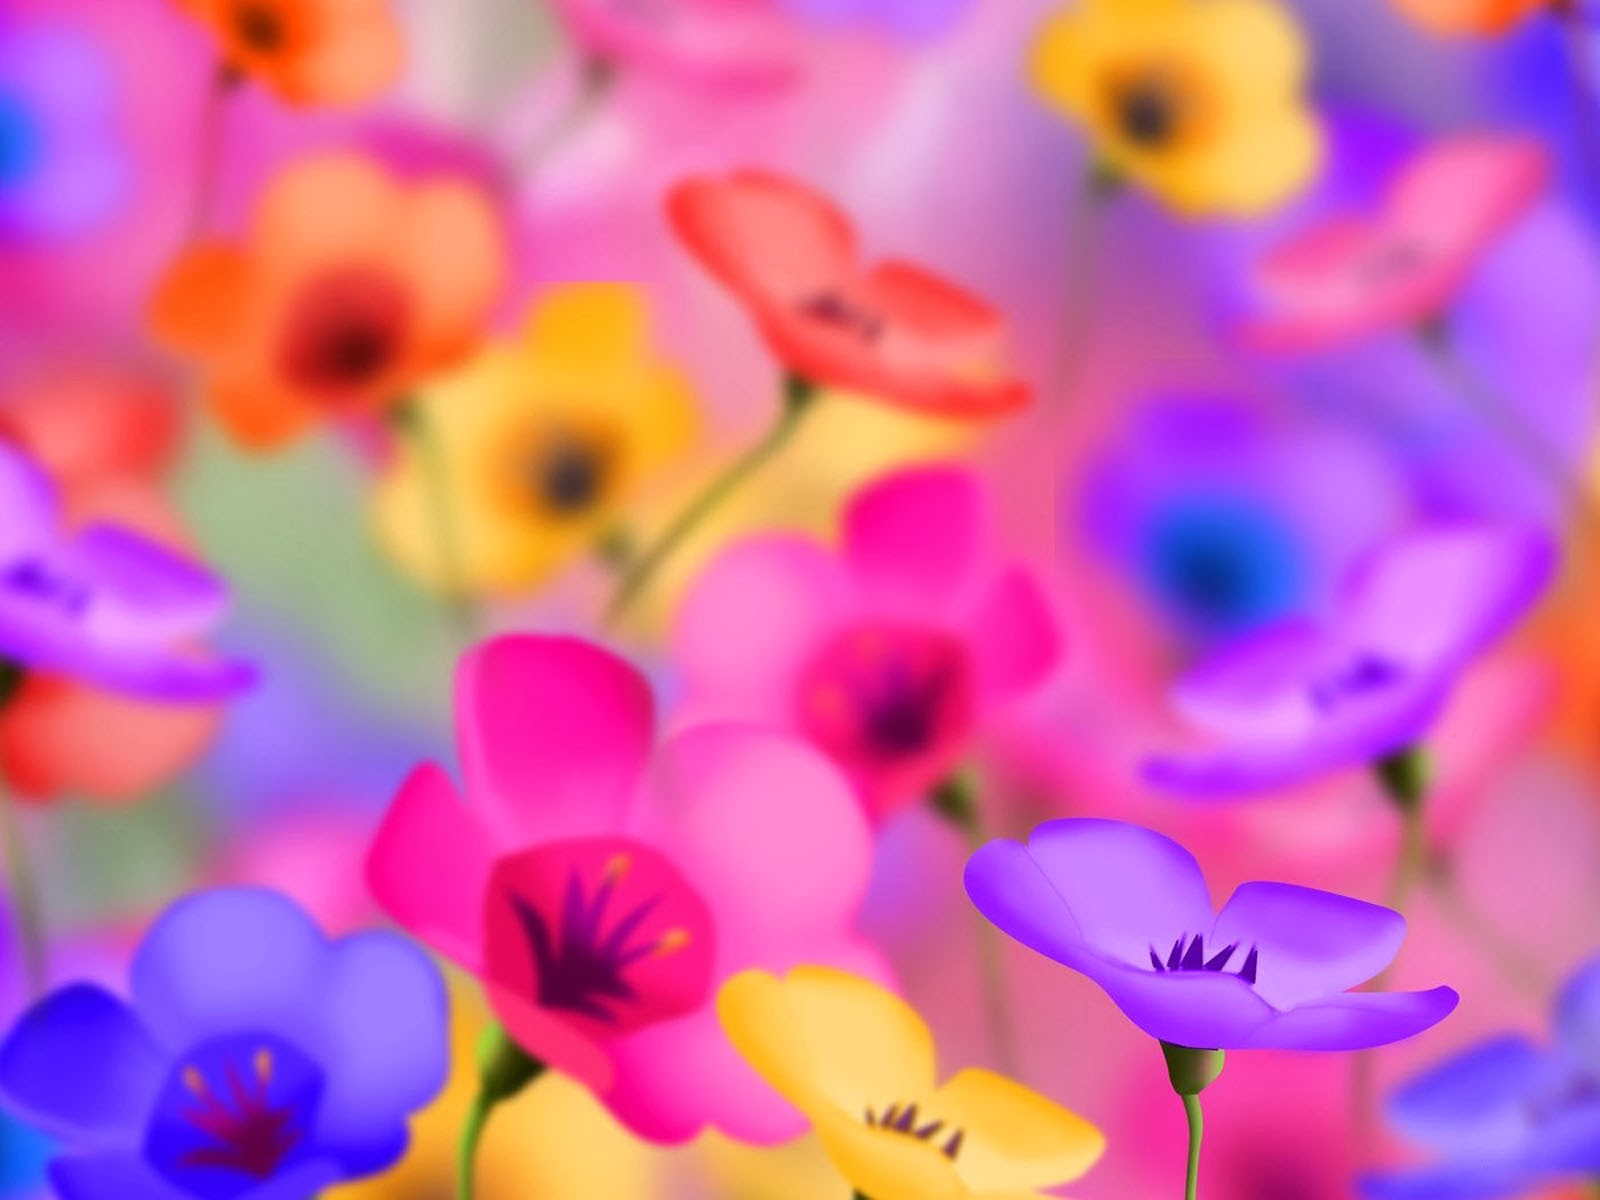 50 Beautiful Flower Wallpaper Images For Download,What Goes Well With Blue And Orange